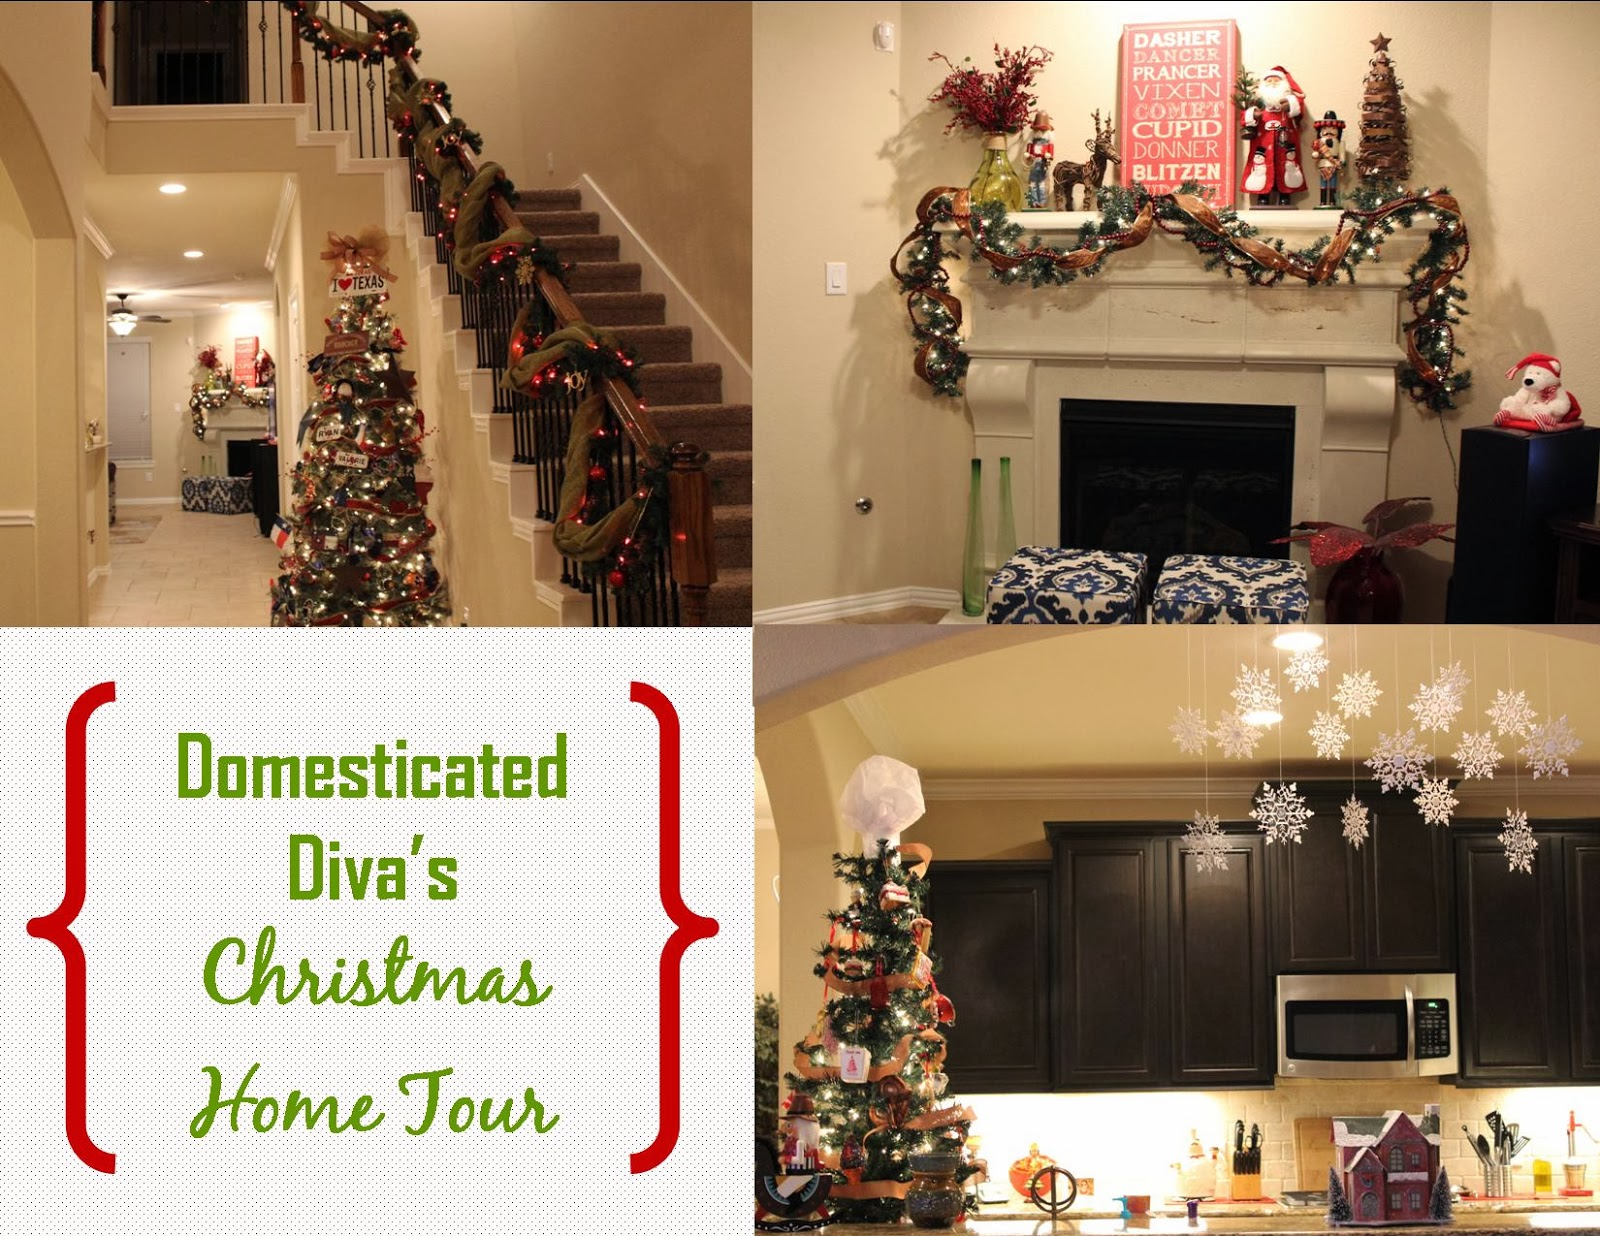 Domesticated Diva: Merry Christmas Eve!...Domesticated Diva\'s ...